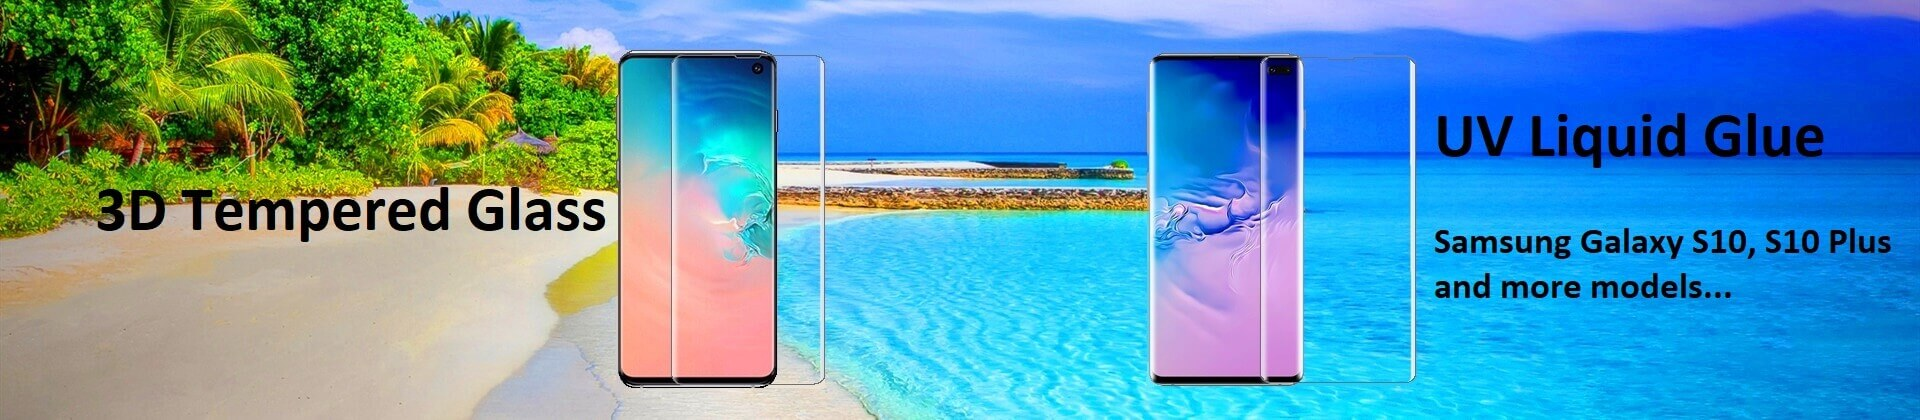 wholesale-UV-liquid-glue-3D-tempered-glass-screen-protectors-for-Samsung-S10-and-S10-Plus